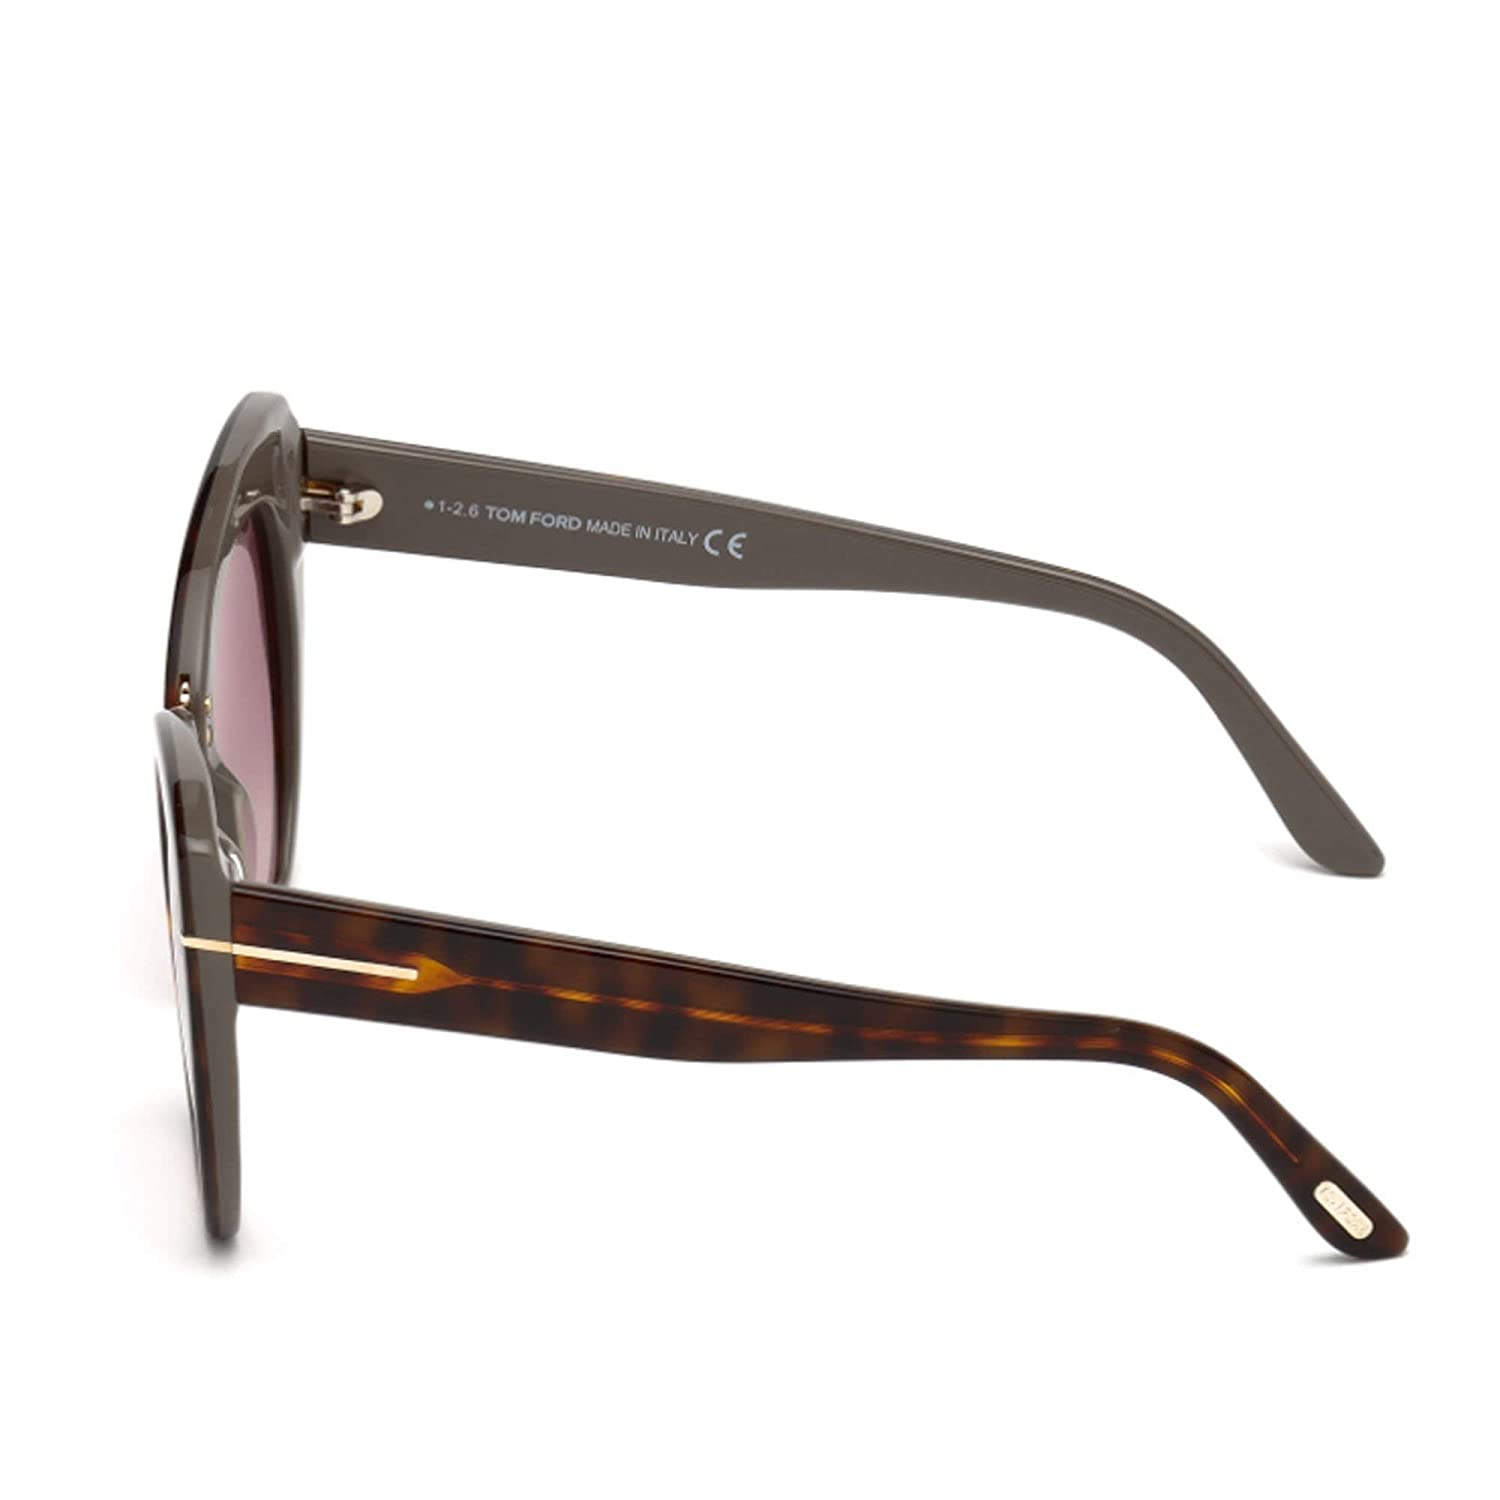 e7aa83cdd89 Sunglasses Tom Ford FT 0553 Samantha- 02 56G havana other   brown mirror at  Amazon Men s Clothing store